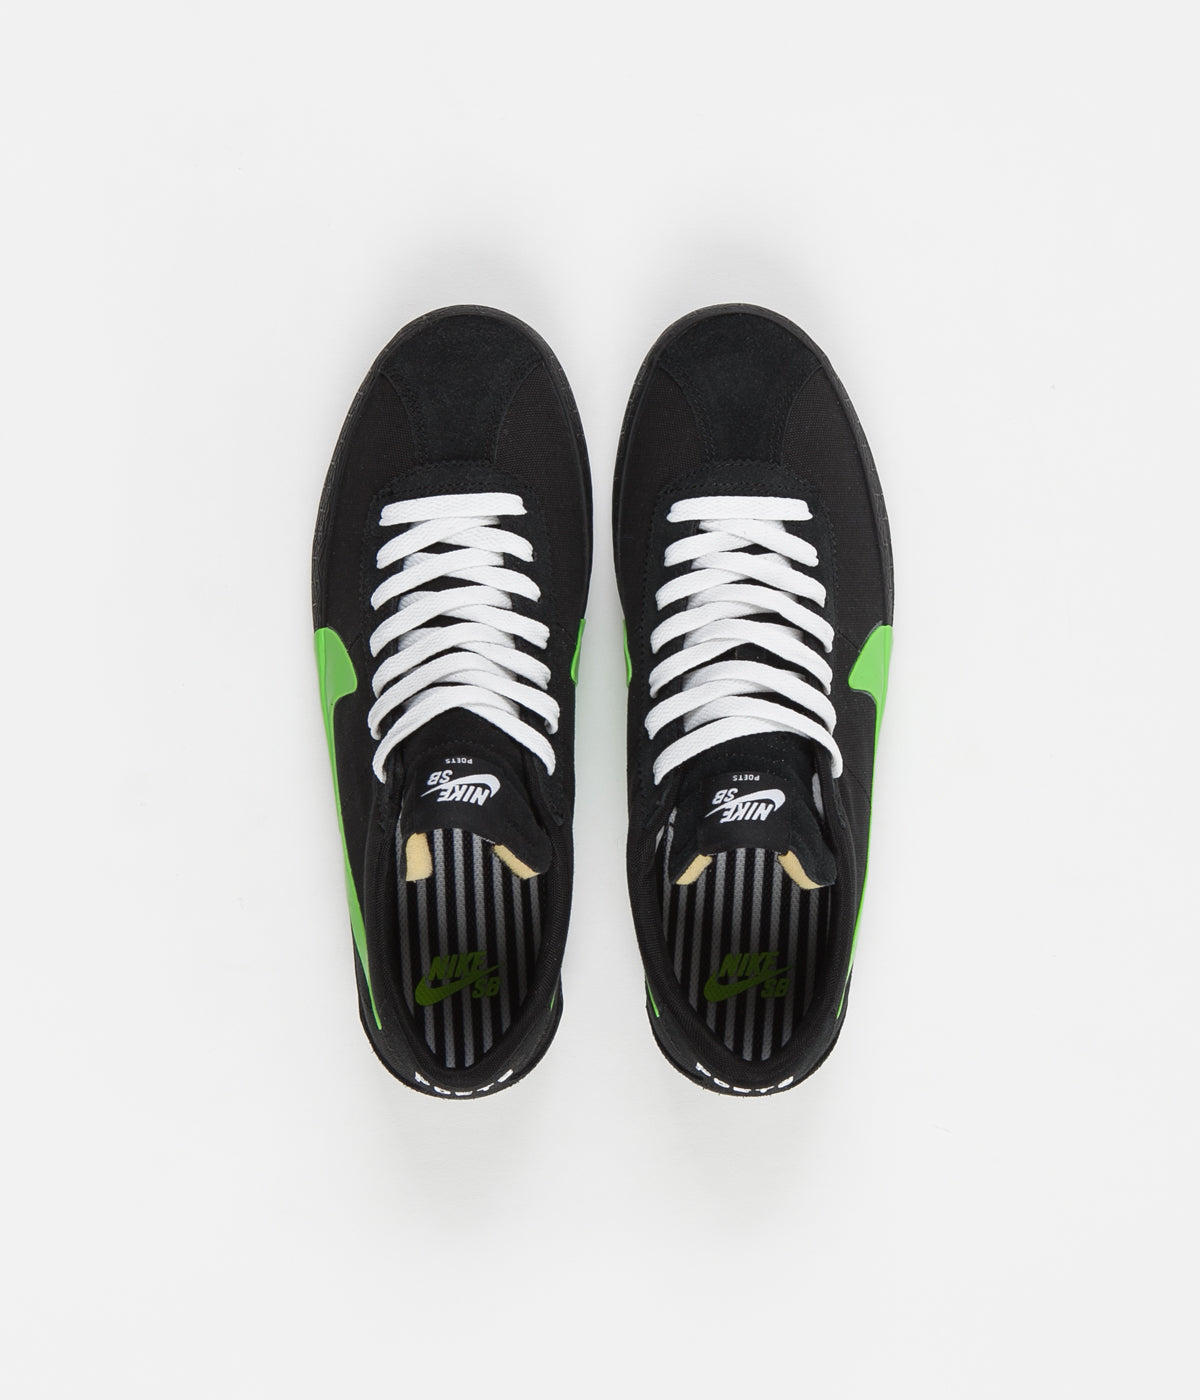 Nike SB x Poets Bruin Shoes - Black / Voltage Green - White